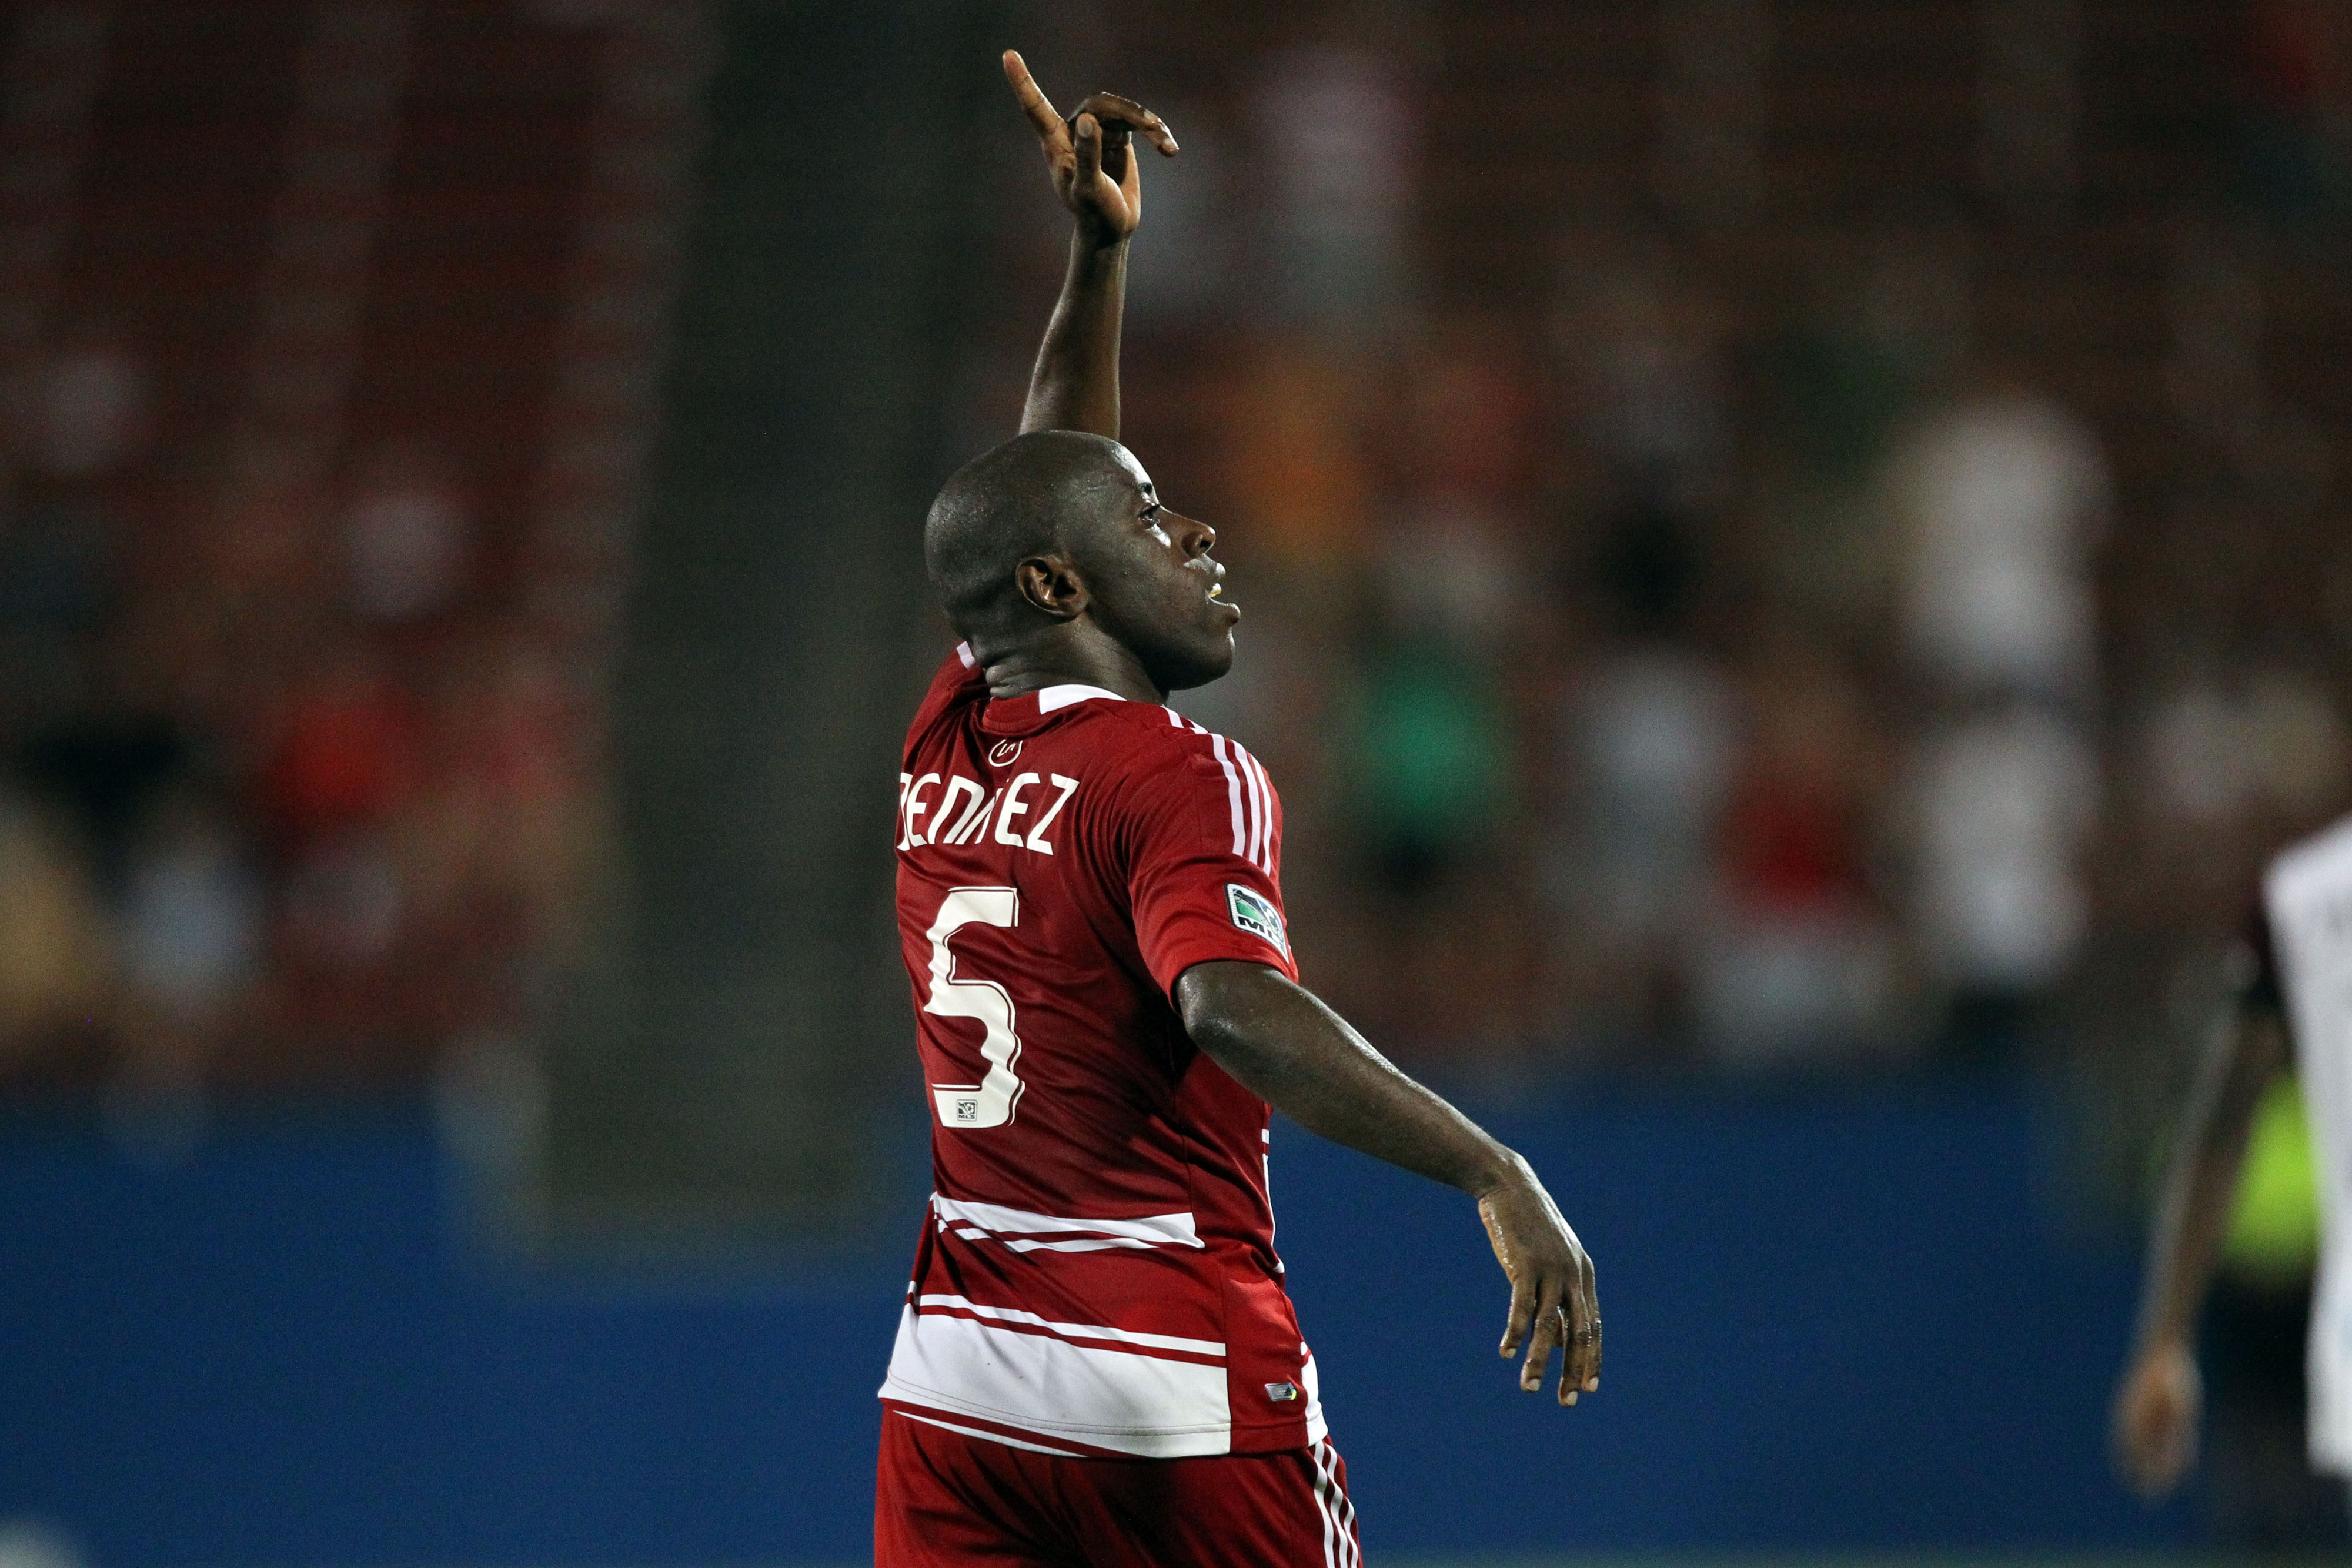 FRISCO, TX - AUGUST 11: Jair Benitez #5 of FC Dallas points to the crowd and celebrates his goal against the Colorado Rapids at FC Dallas Stadium on August 11, 2012 in Frisco, Texas. (Photo by Layne Murdoch/Getty Images)